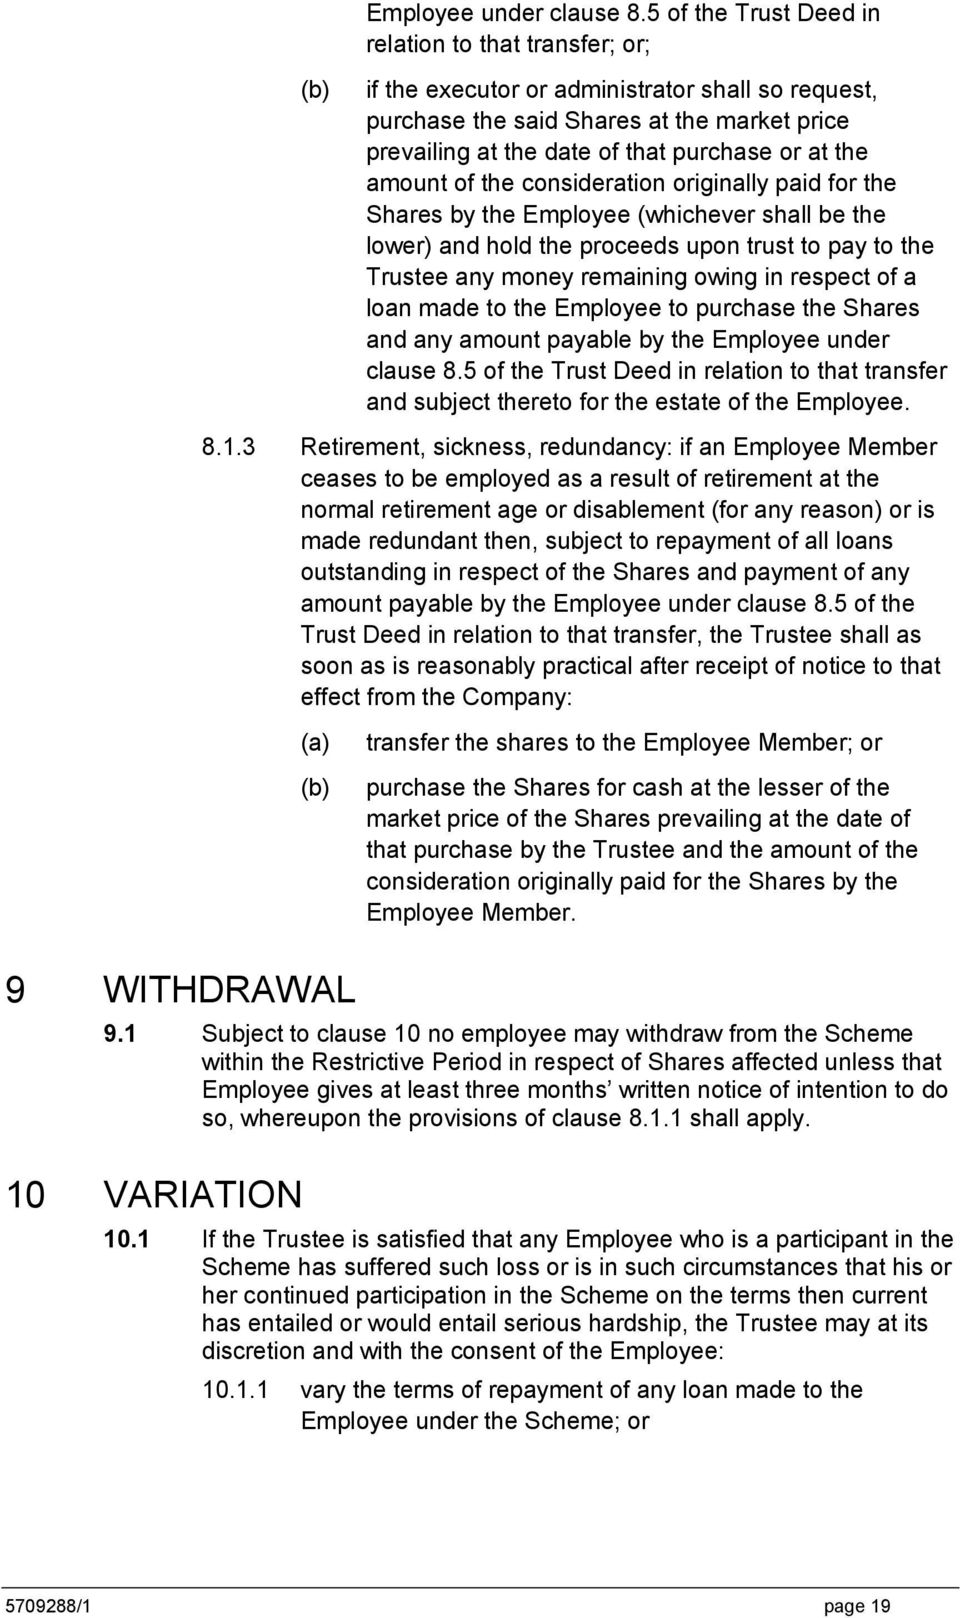 the amount of the consideration originally paid for the Shares by the Employee (whichever shall be the lower) and hold the proceeds upon trust to pay to the Trustee any money remaining owing in